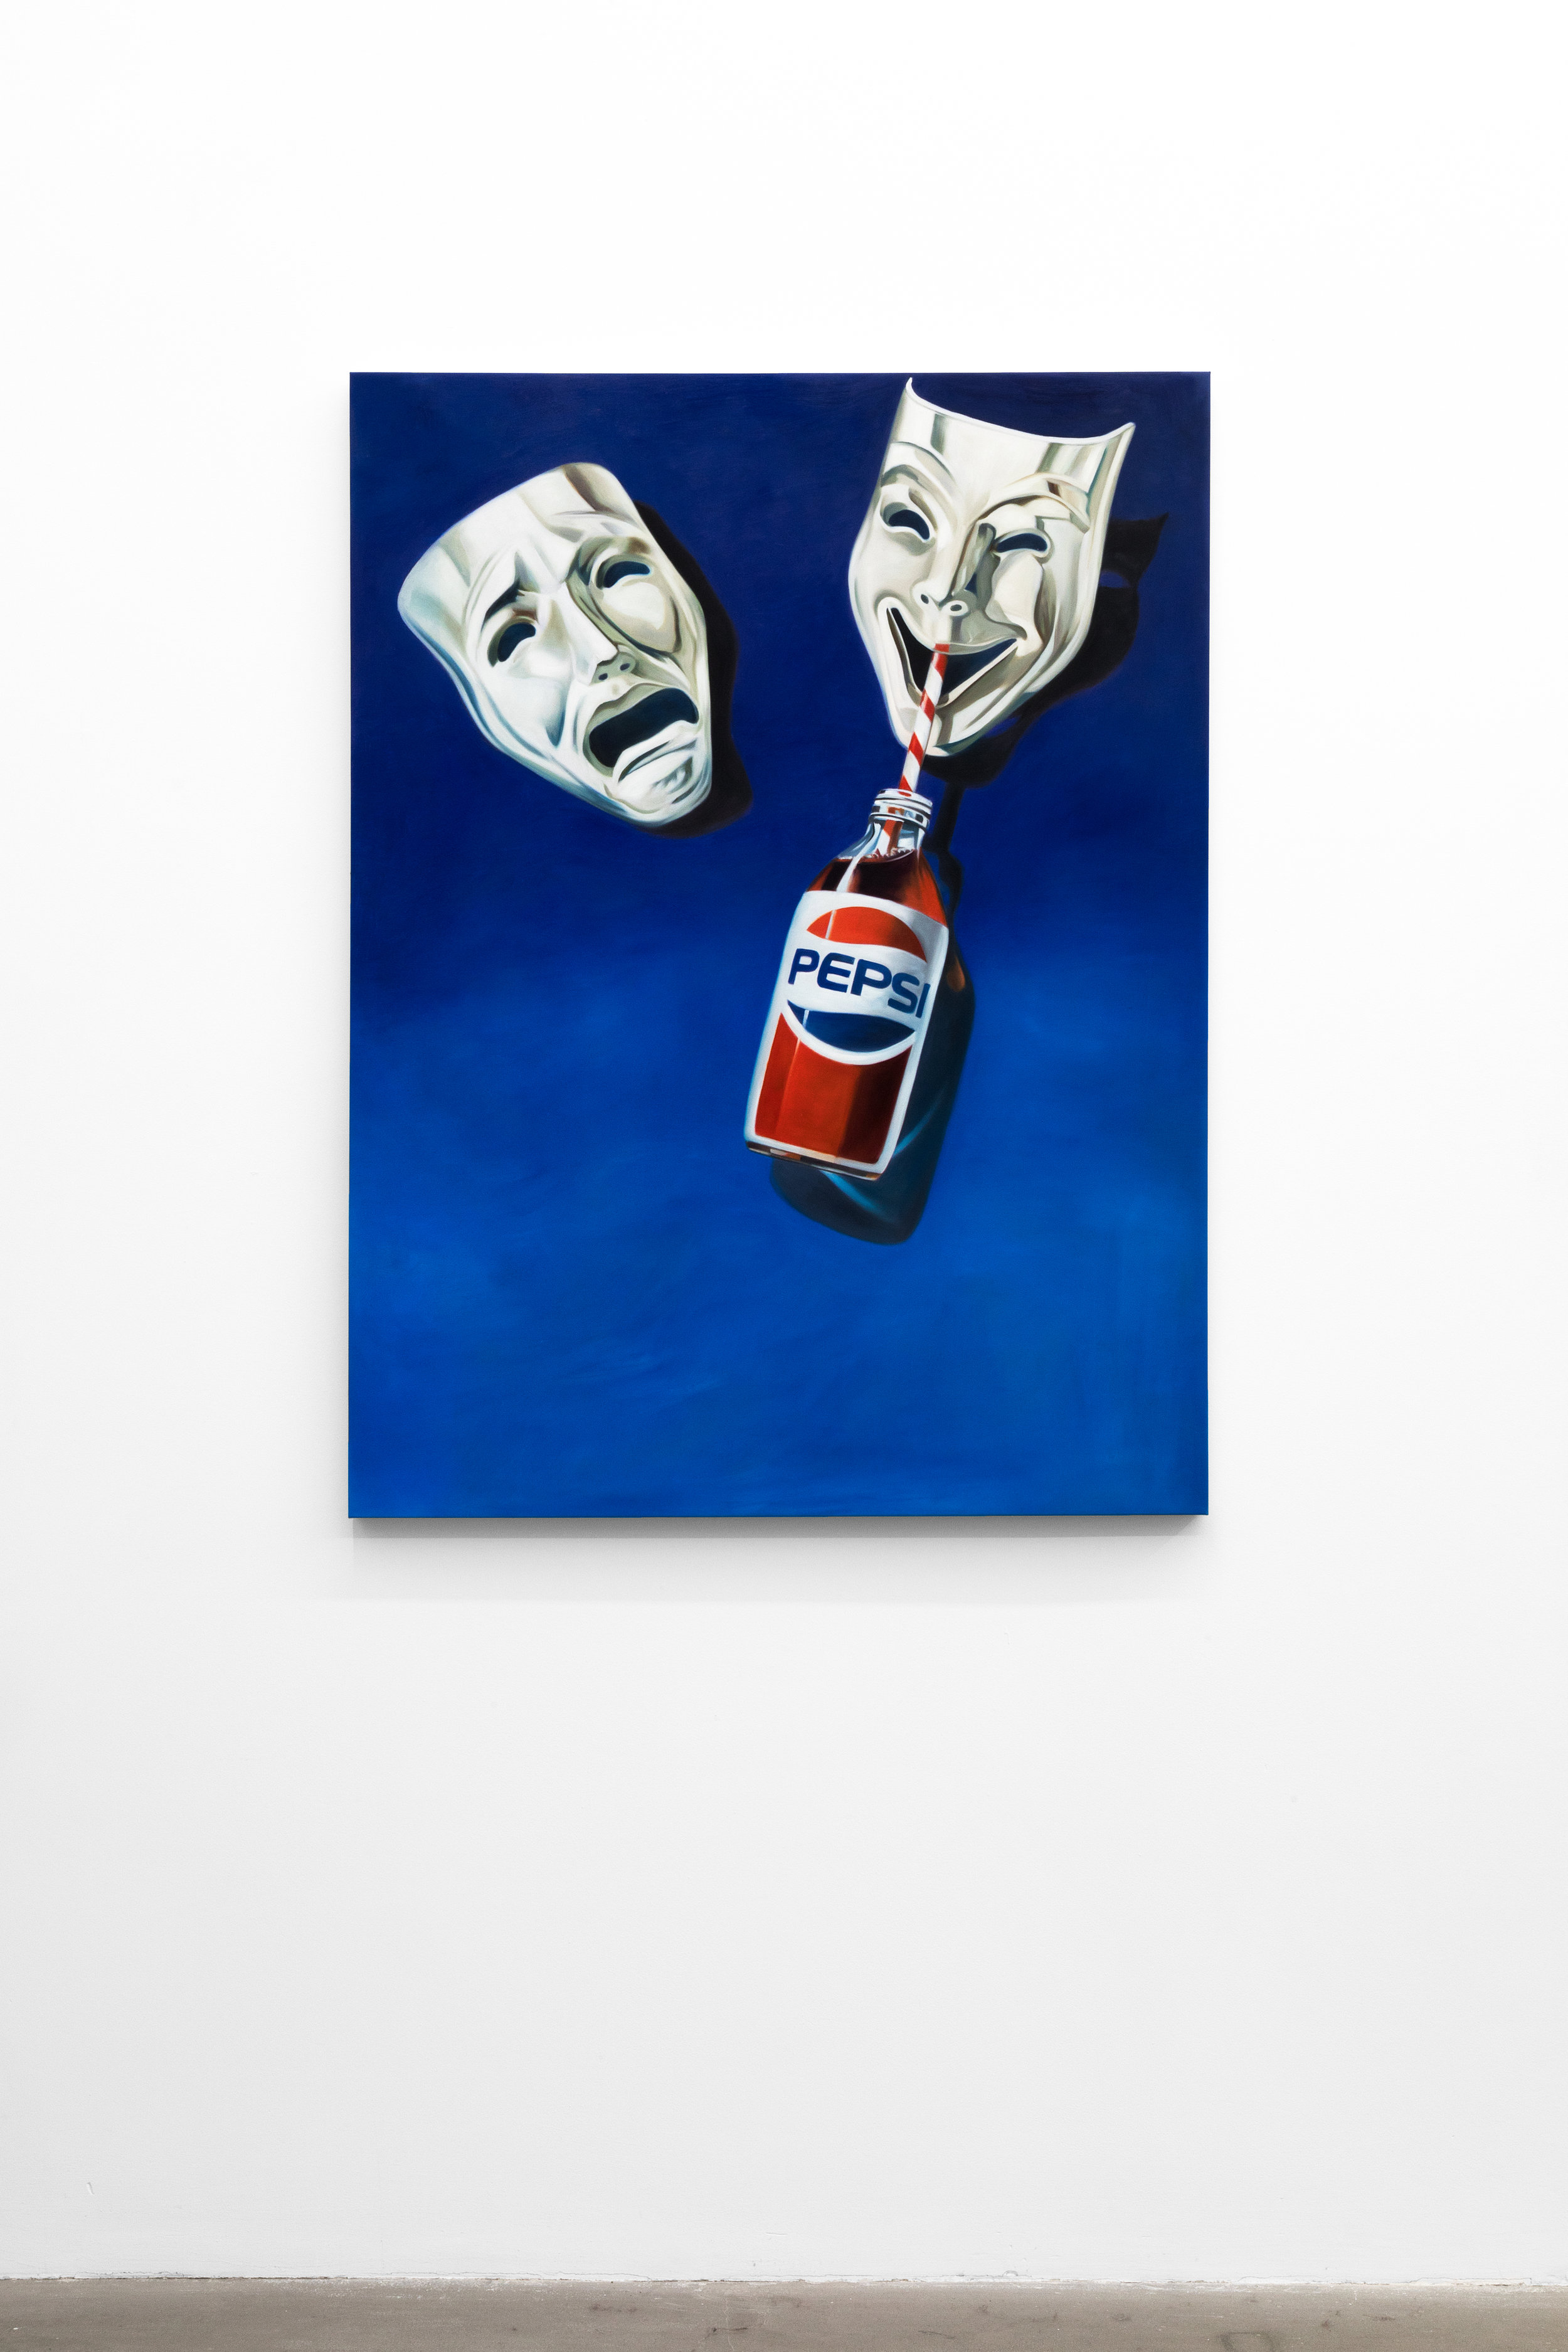 Jesse Harris, Comedy Tragedy Pepsi , 2018 Oil on Canvas, 48 x 36 in (121.9 x 91.4 cm)